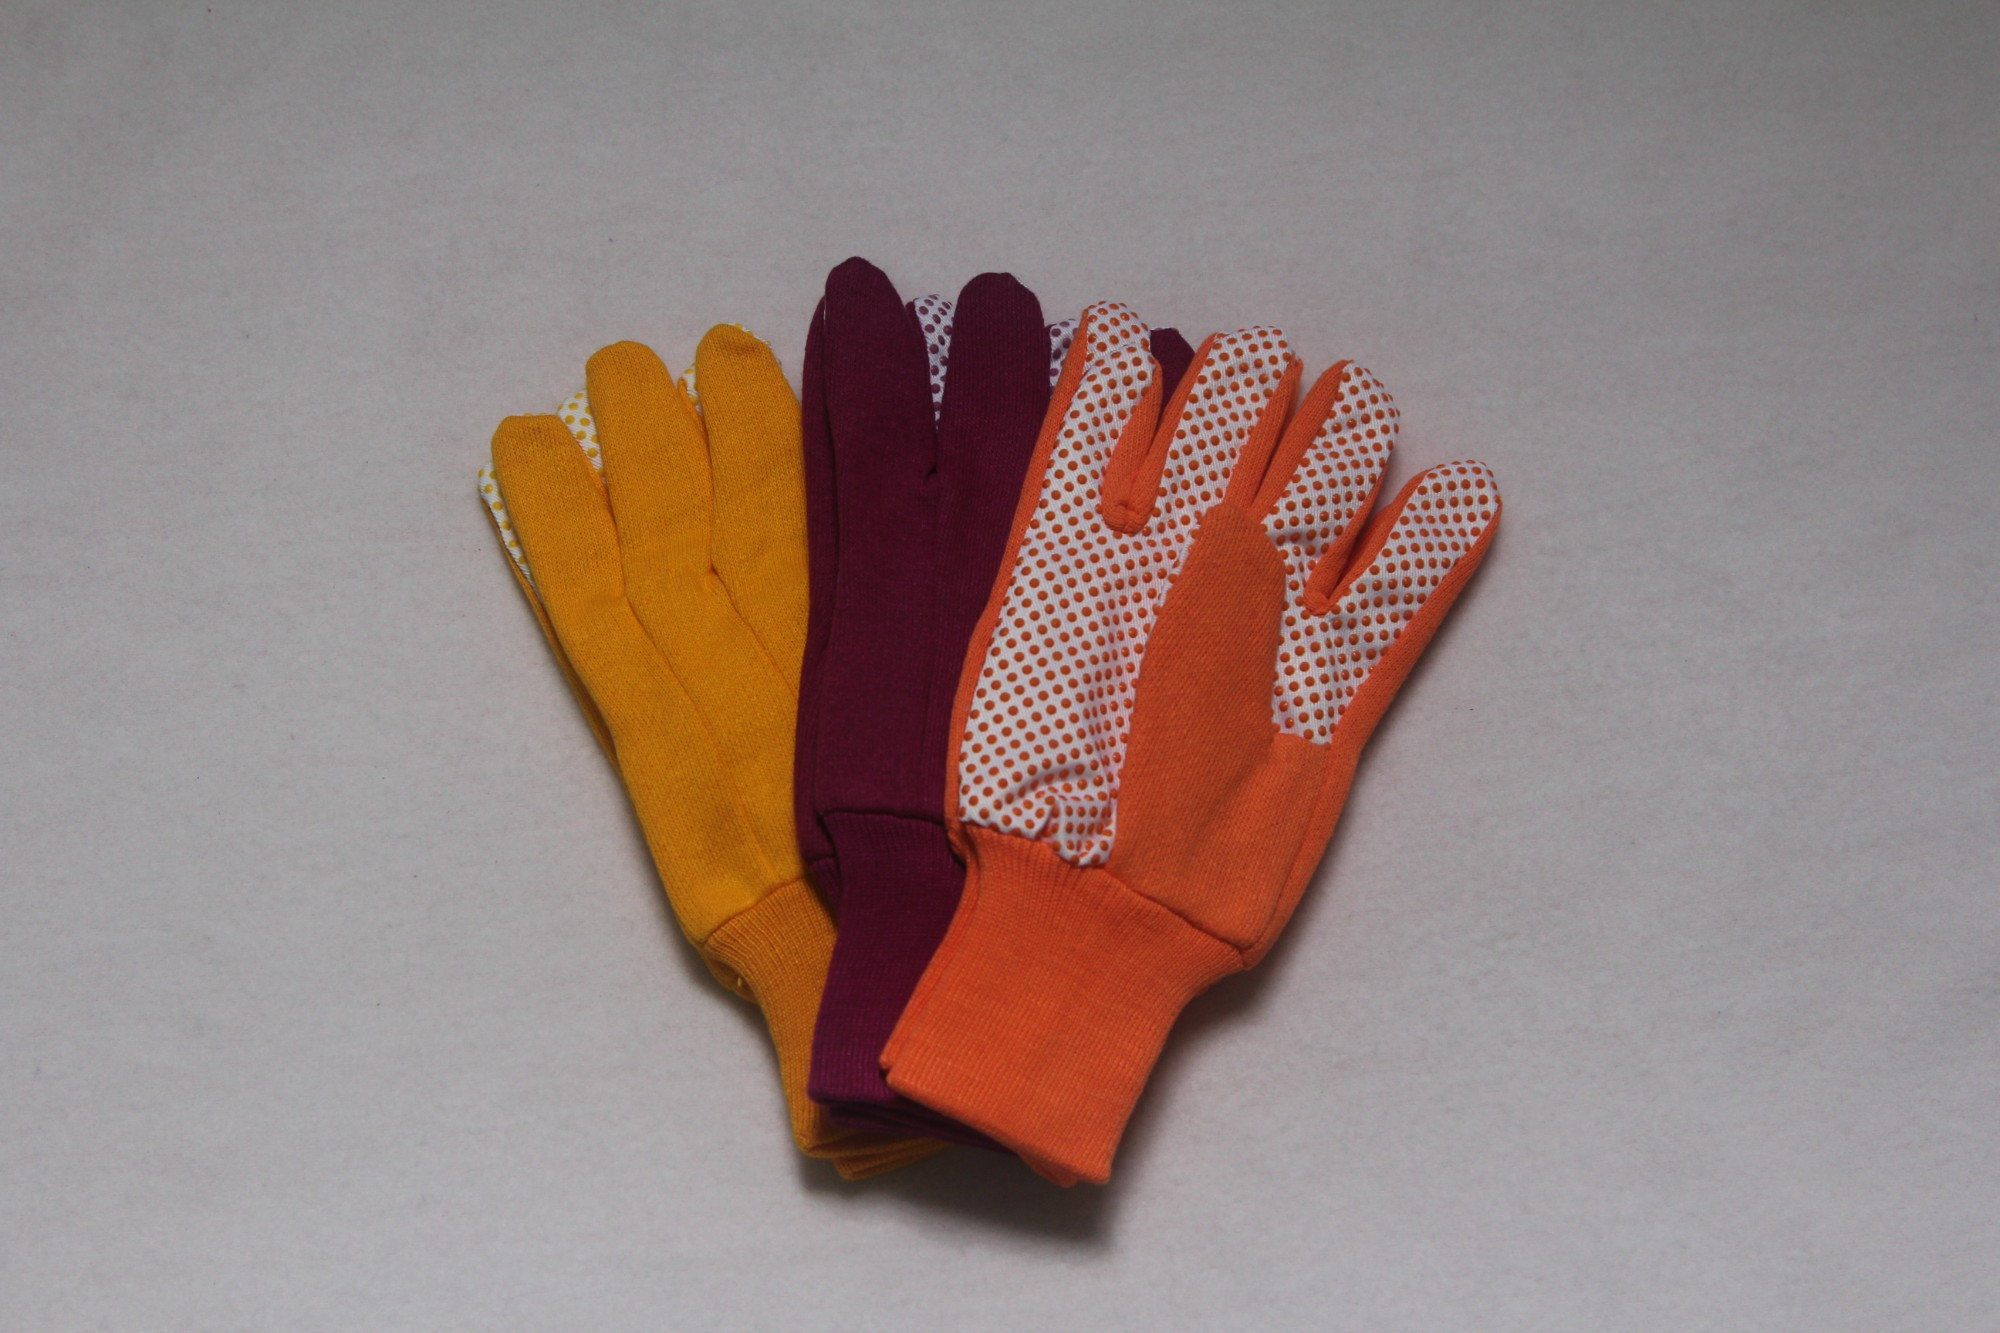 Koop Cotton Brown Jersey With PVC Dots Glove. Cotton Brown Jersey With PVC Dots Glove Prijzen. Cotton Brown Jersey With PVC Dots Glove Brands. Cotton Brown Jersey With PVC Dots Glove Fabrikant. Cotton Brown Jersey With PVC Dots Glove Quotes. Cotton Brown Jersey With PVC Dots Glove Company.